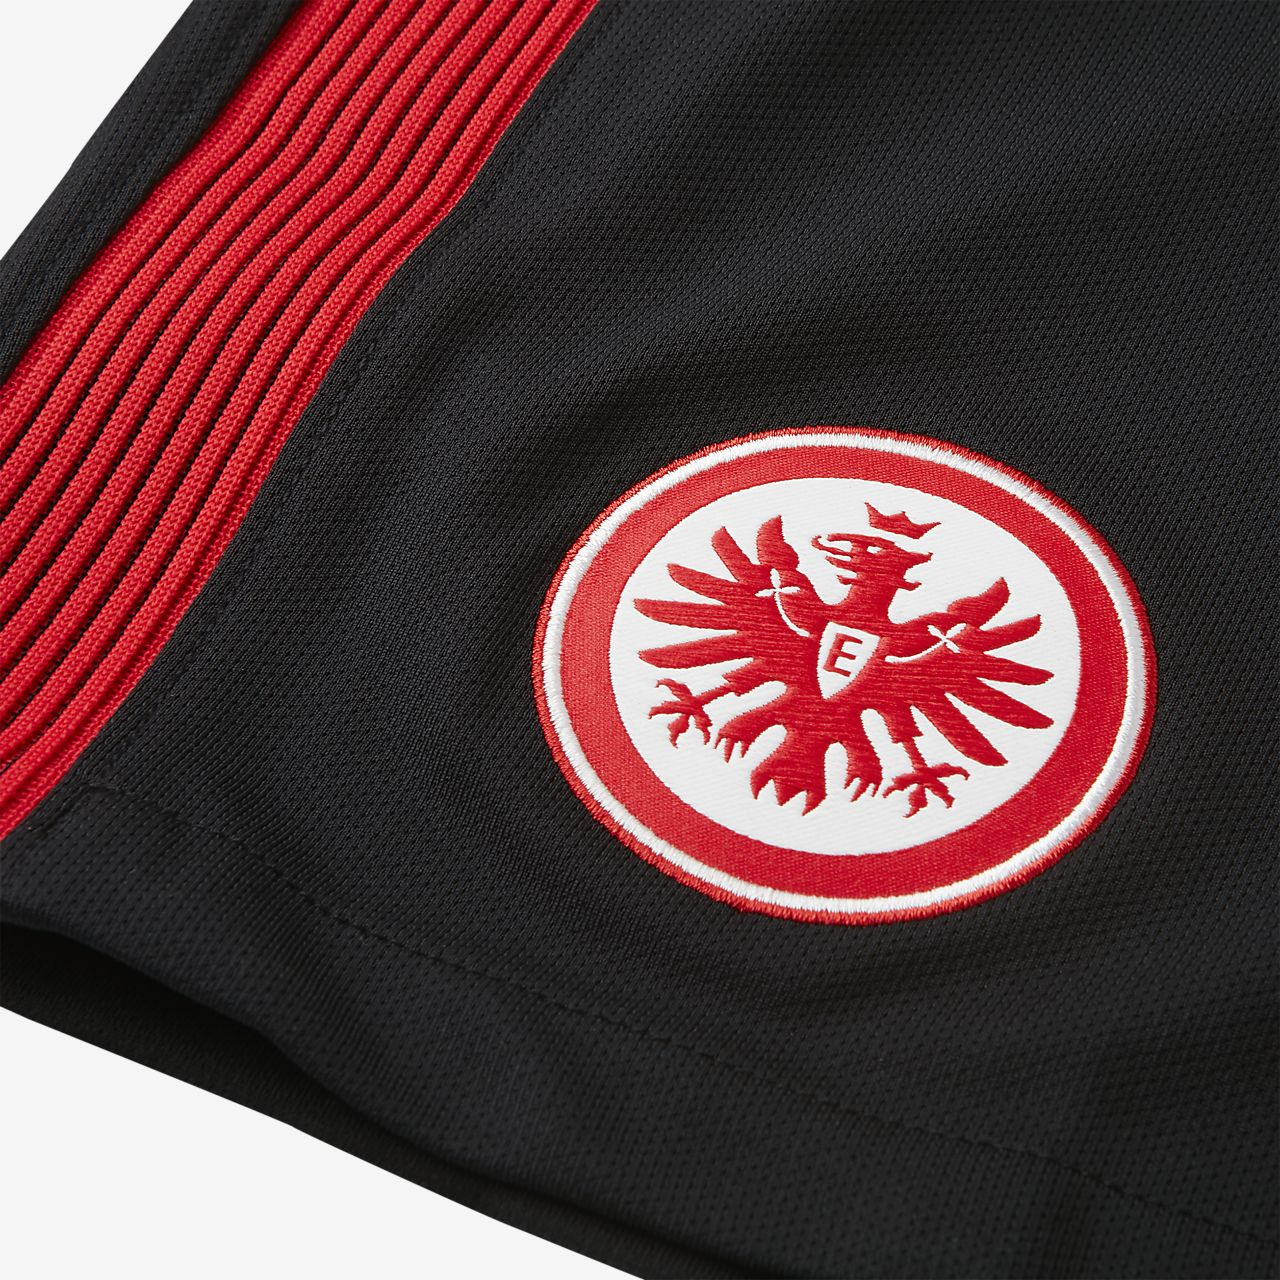 2017/18 Eintracht Frankfurt Stadium Home/Away Men\u0027s Football ...